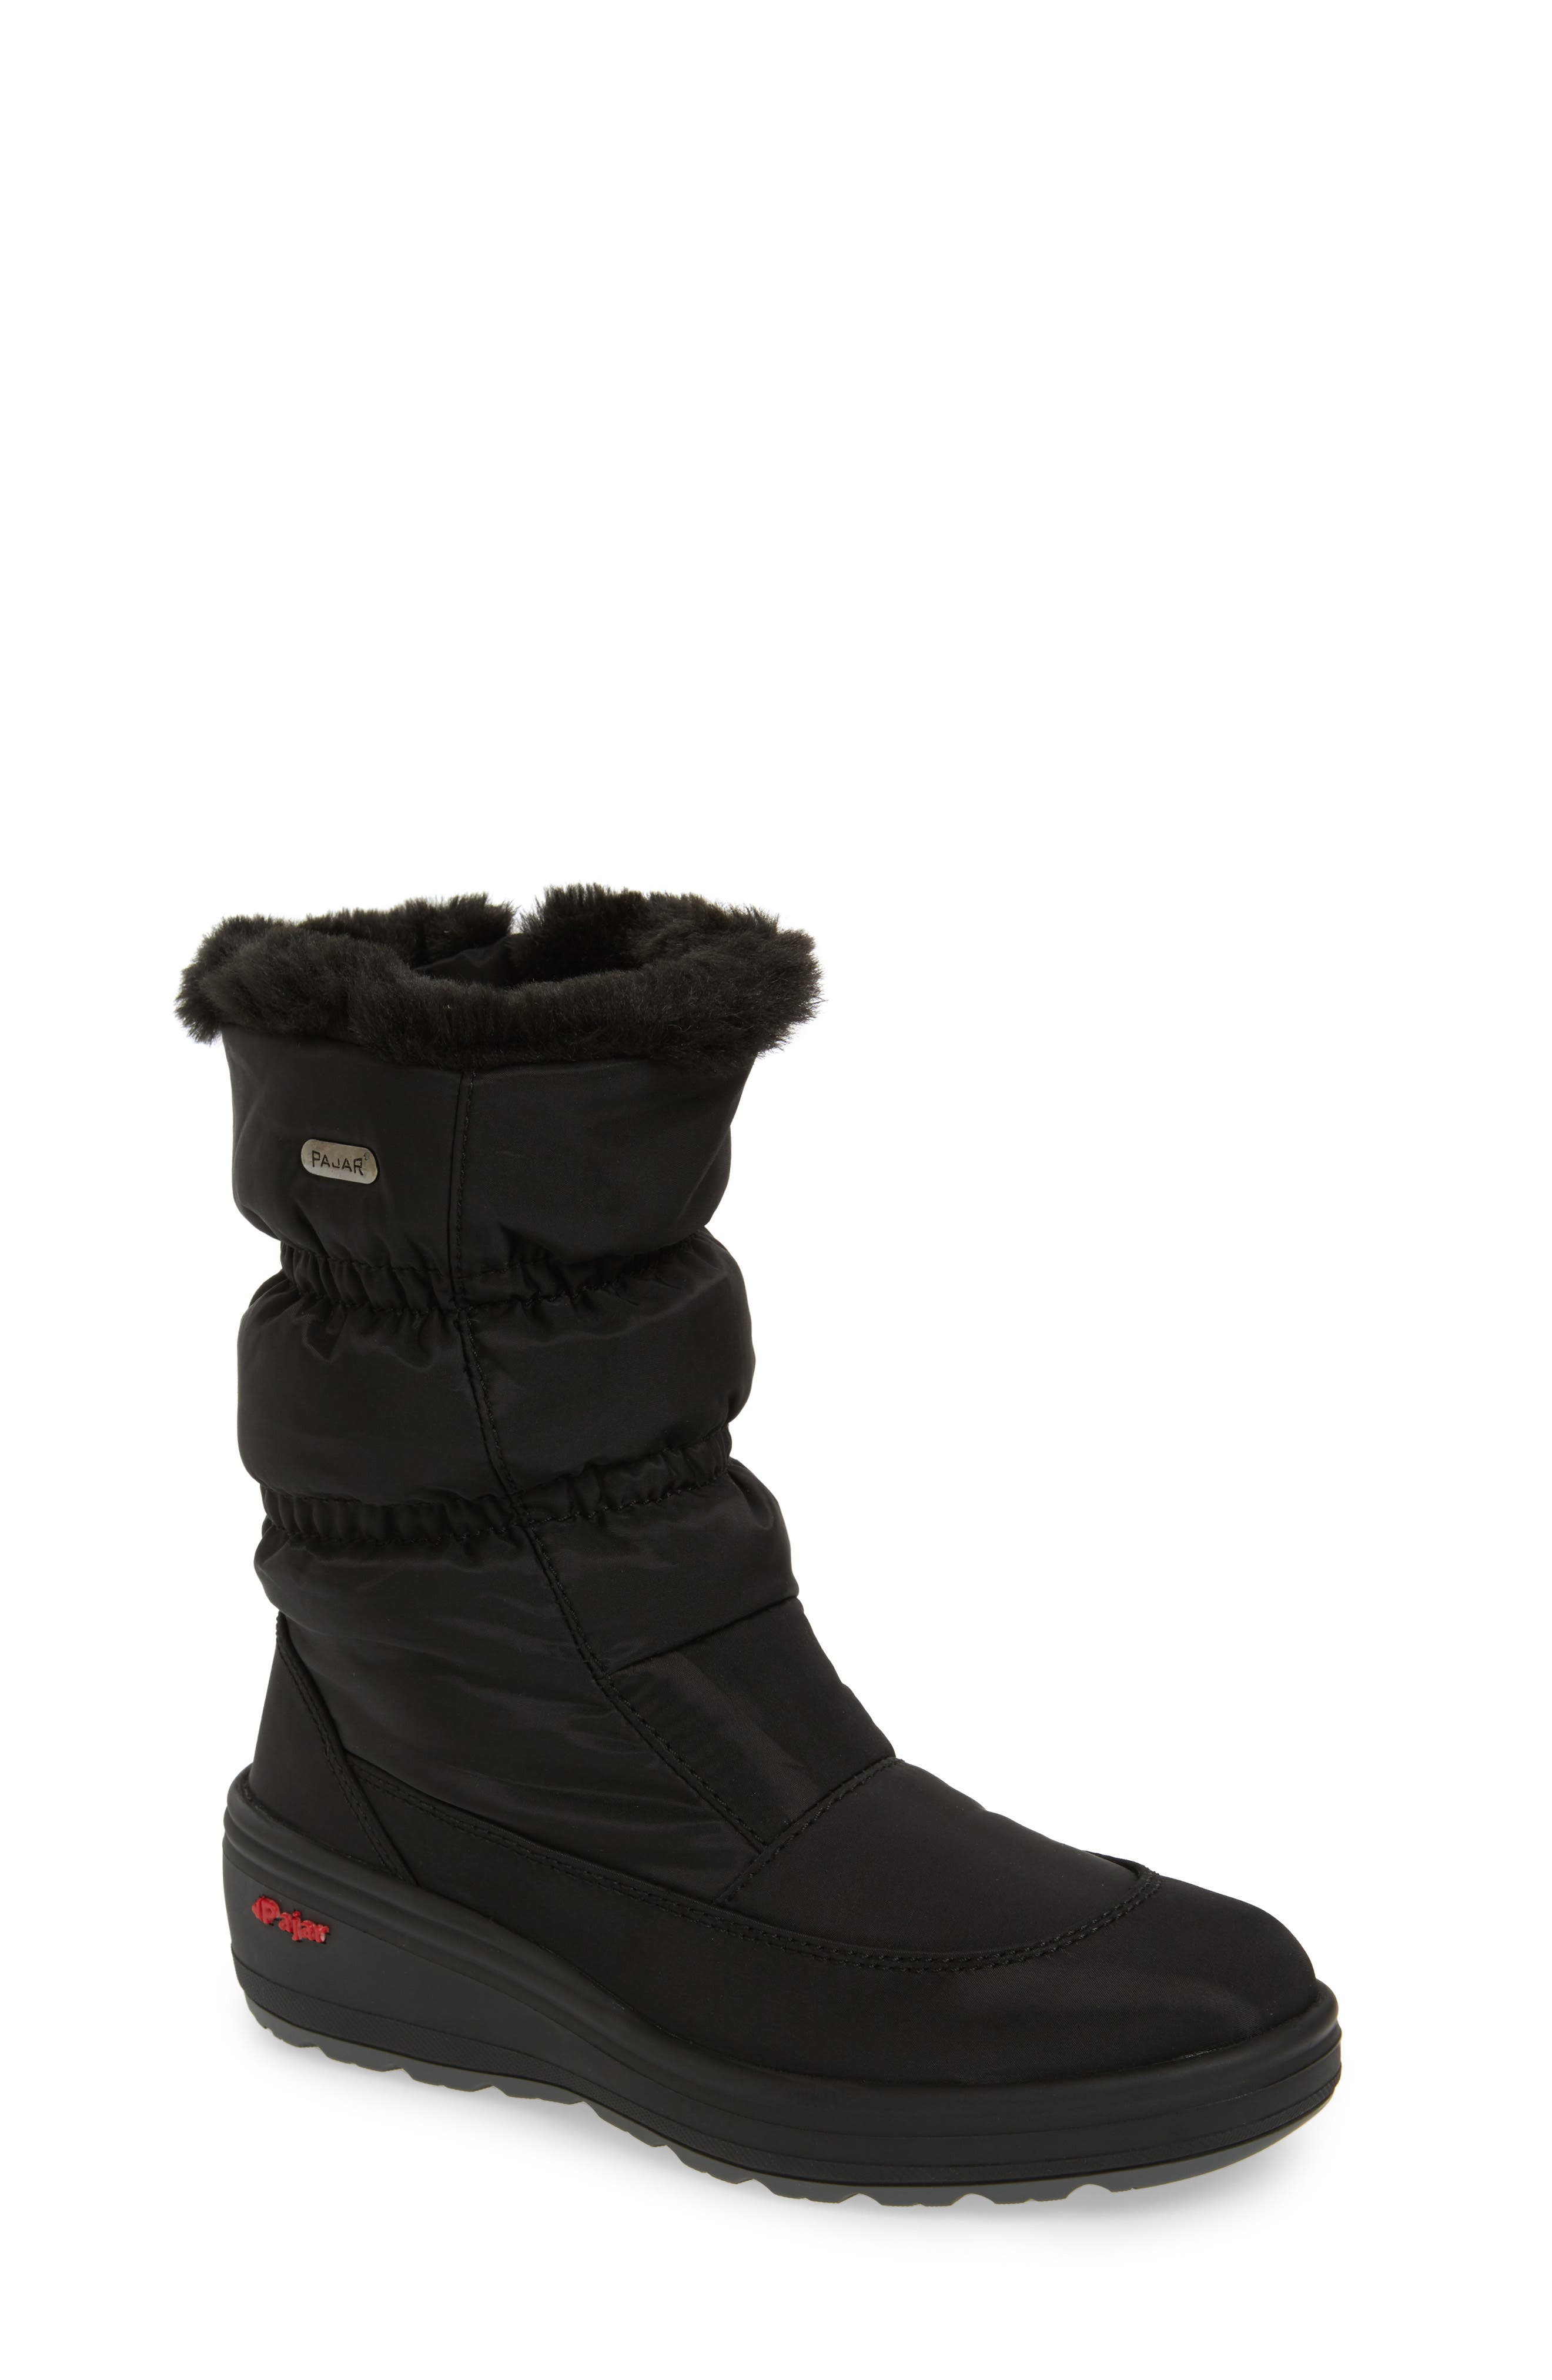 Snowcap Waterproof Insulated Winter Boot,                         Main,                         color, Black Fabric